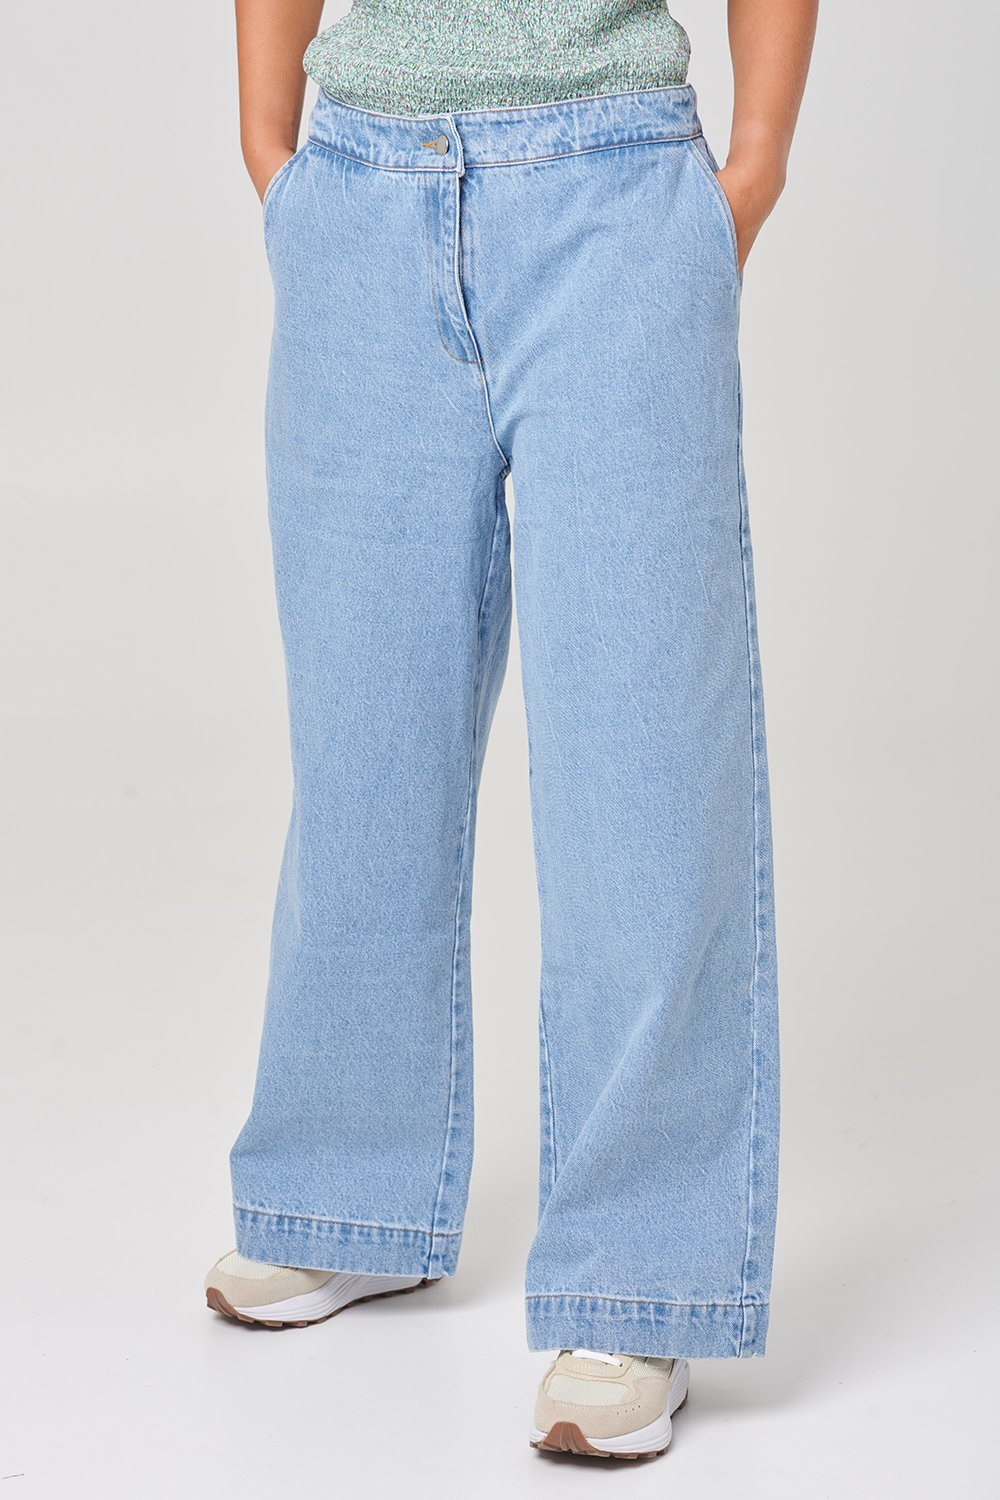 Noella Ace Pants Denim